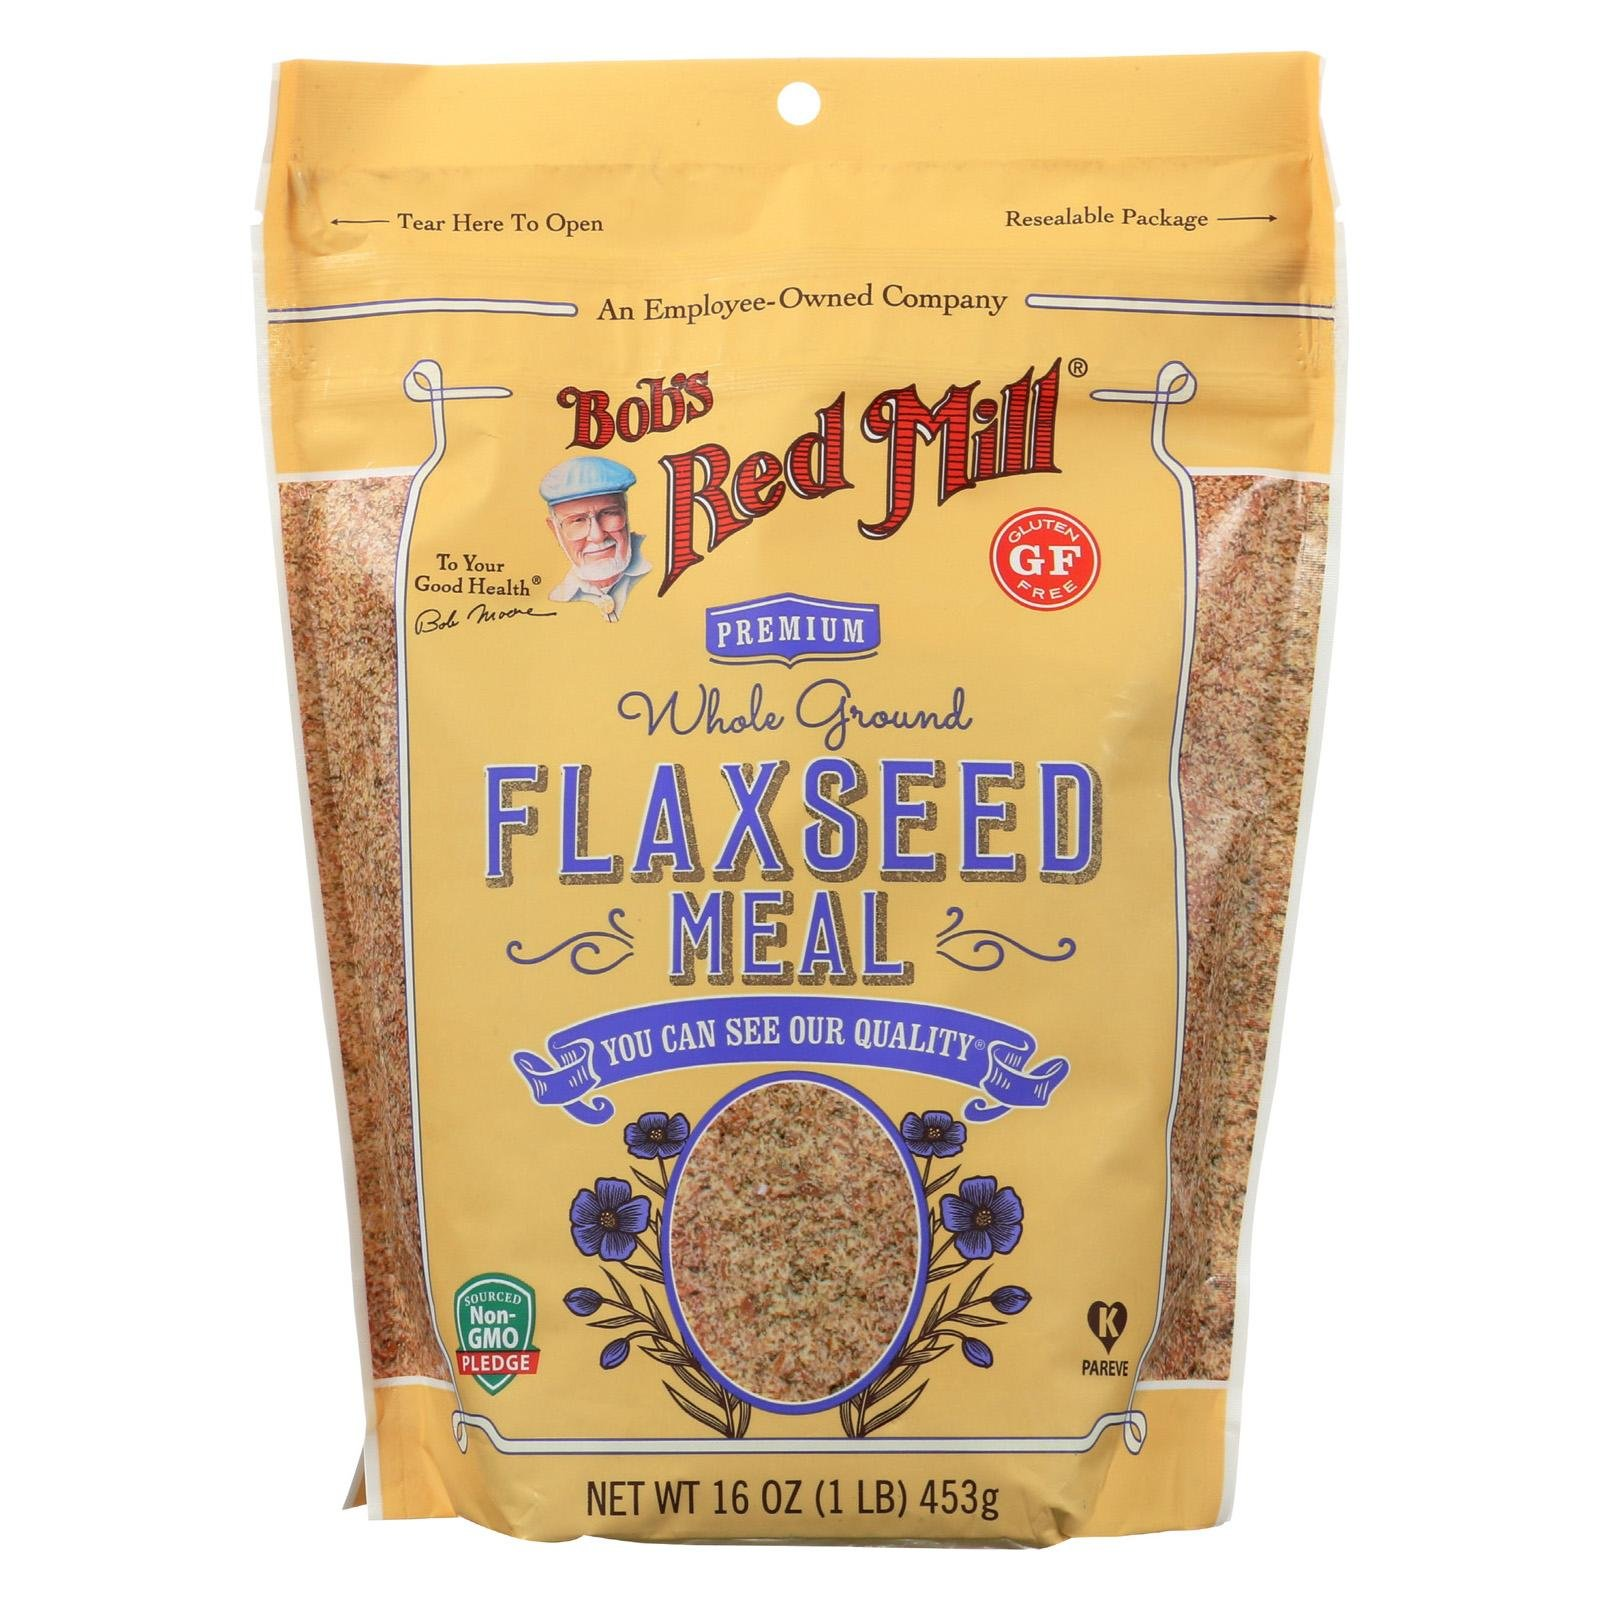 BOB'S RED MILL, Flaxseed Meal, Gluten Free, Pack of 4, Size 16 OZ, (Gluten Free Kosher)